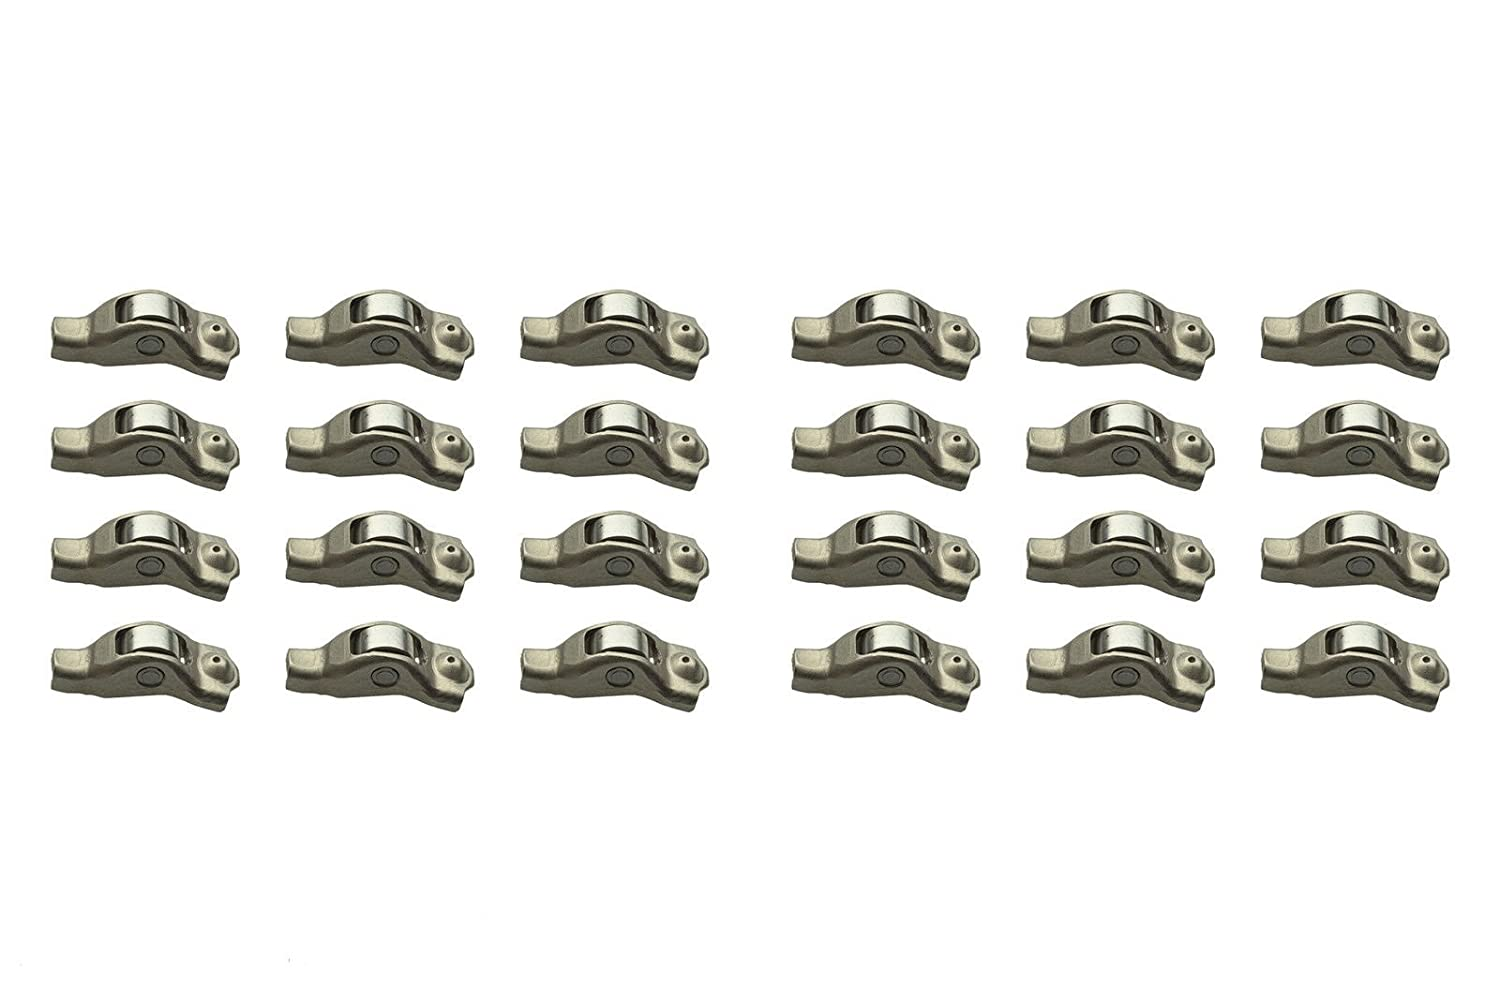 Michigan Motorsports 24 Rocker Arms fits Ford Mustang F150 Racing 4.6L 5.4L 3V Engine Valve